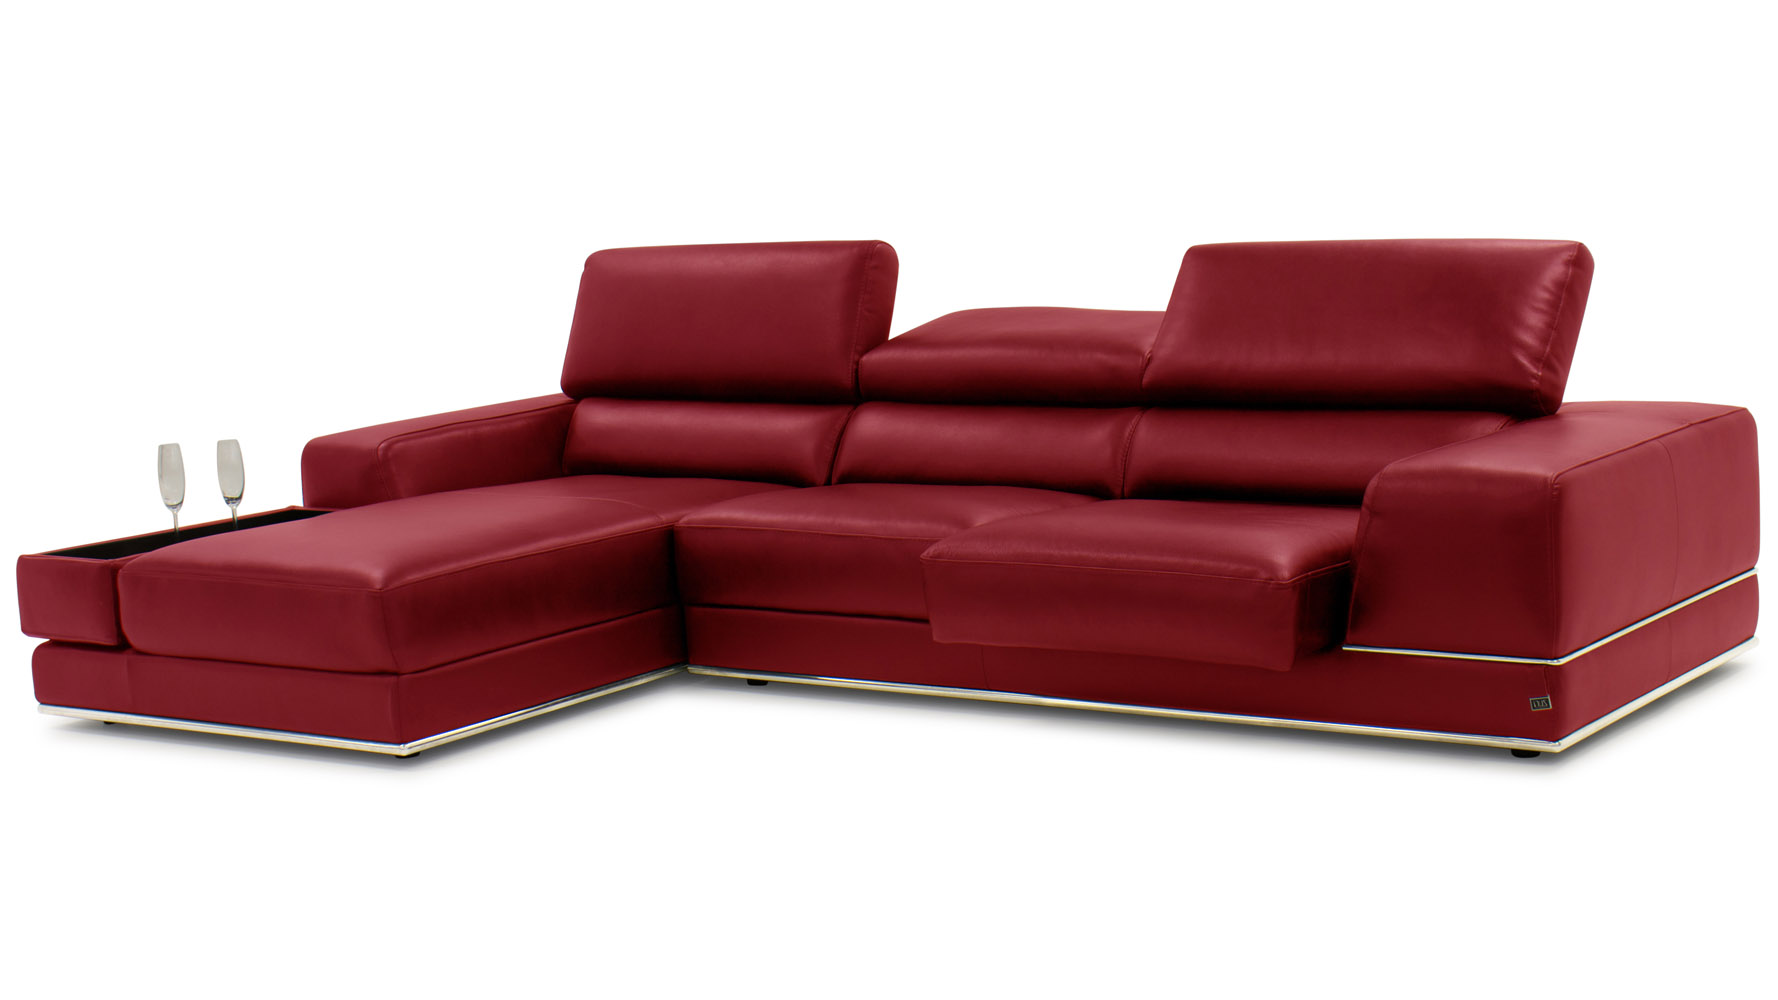 100 Red Leather Chaise Sofa Sectional L Shaped